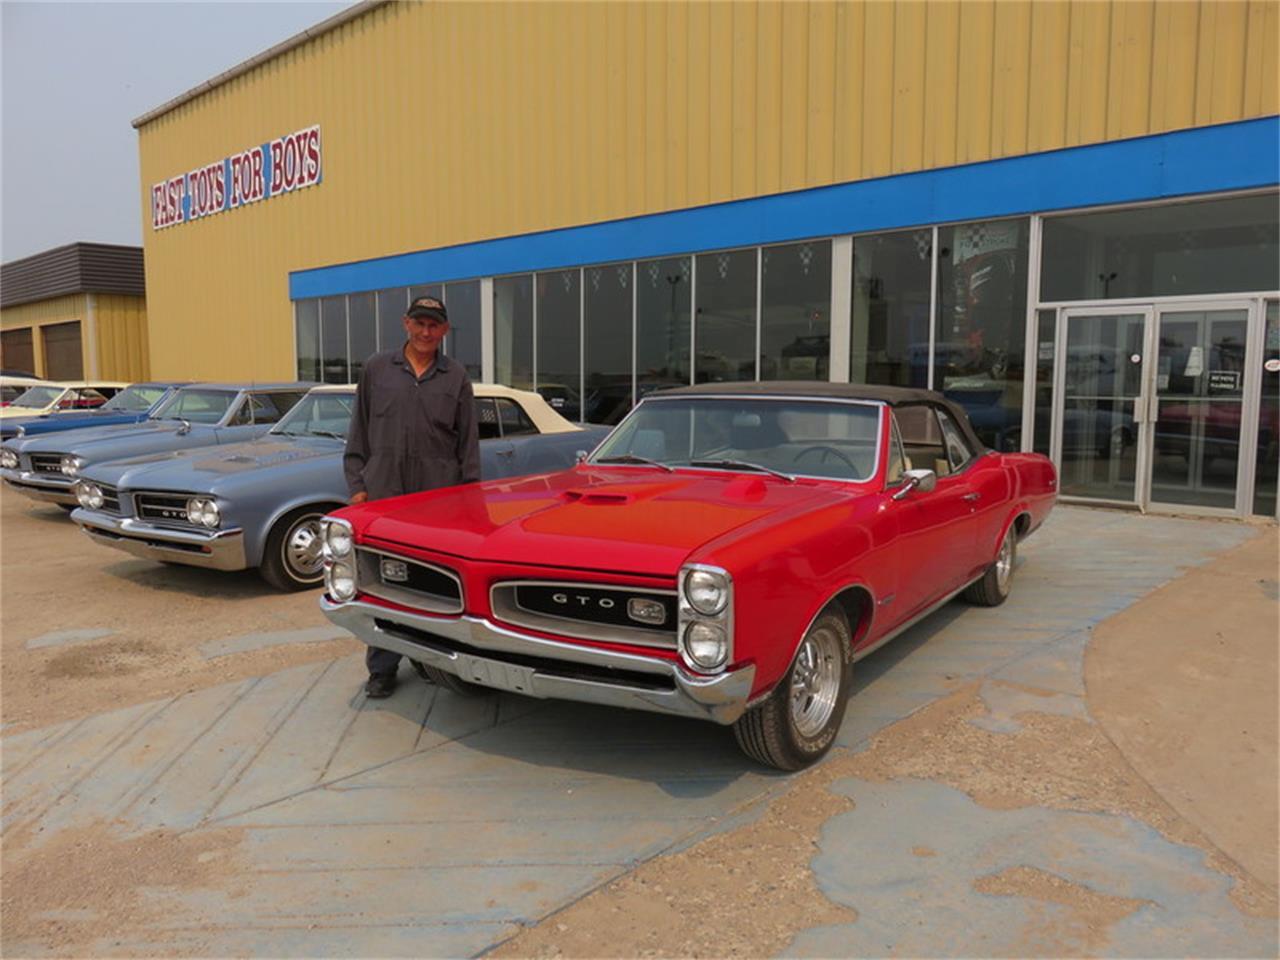 Large Picture of '66 Pontiac Tempest Auction Vehicle Offered by Fast Toys For Boys - H6CW